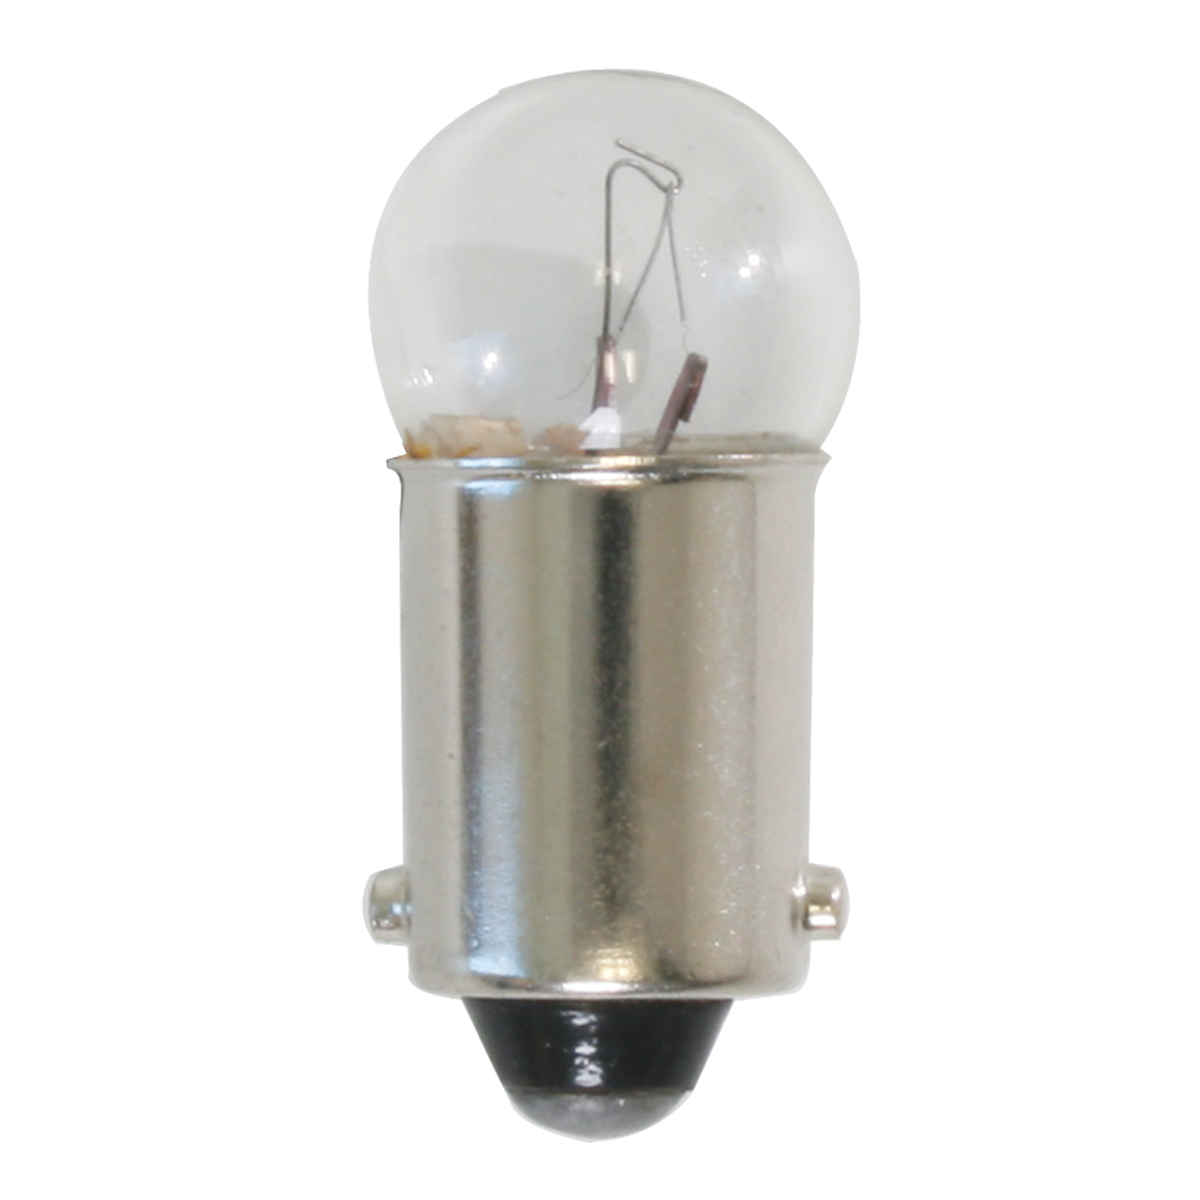 #79102 Miniature Replacement #1445 Clear Light Bulb